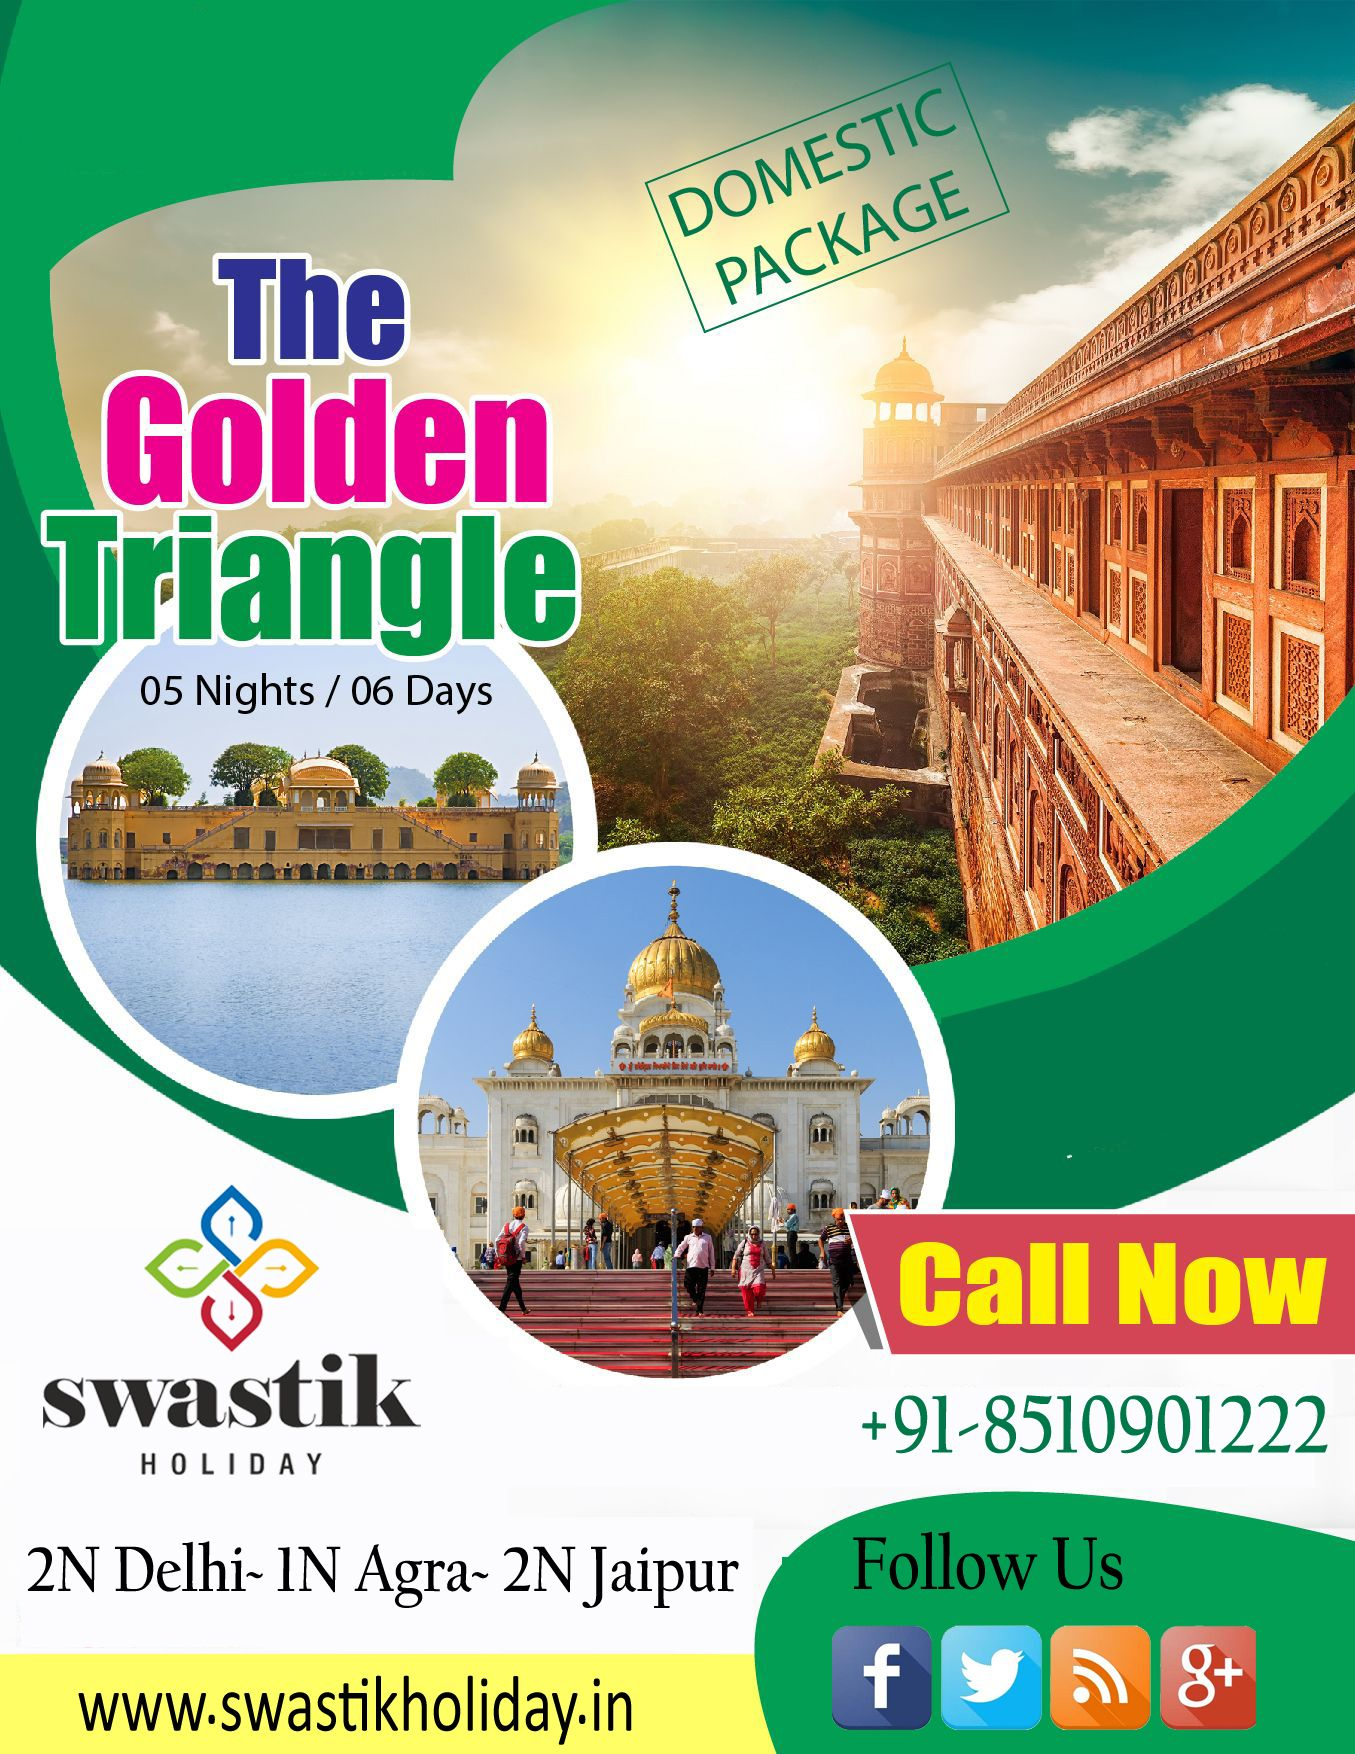 India S Golden Triangle Is A Tourist Circuit Which Connects The National Capital Delhi Agra And Jaipur For Booking Contact Tour Packages Holiday Offer Tours